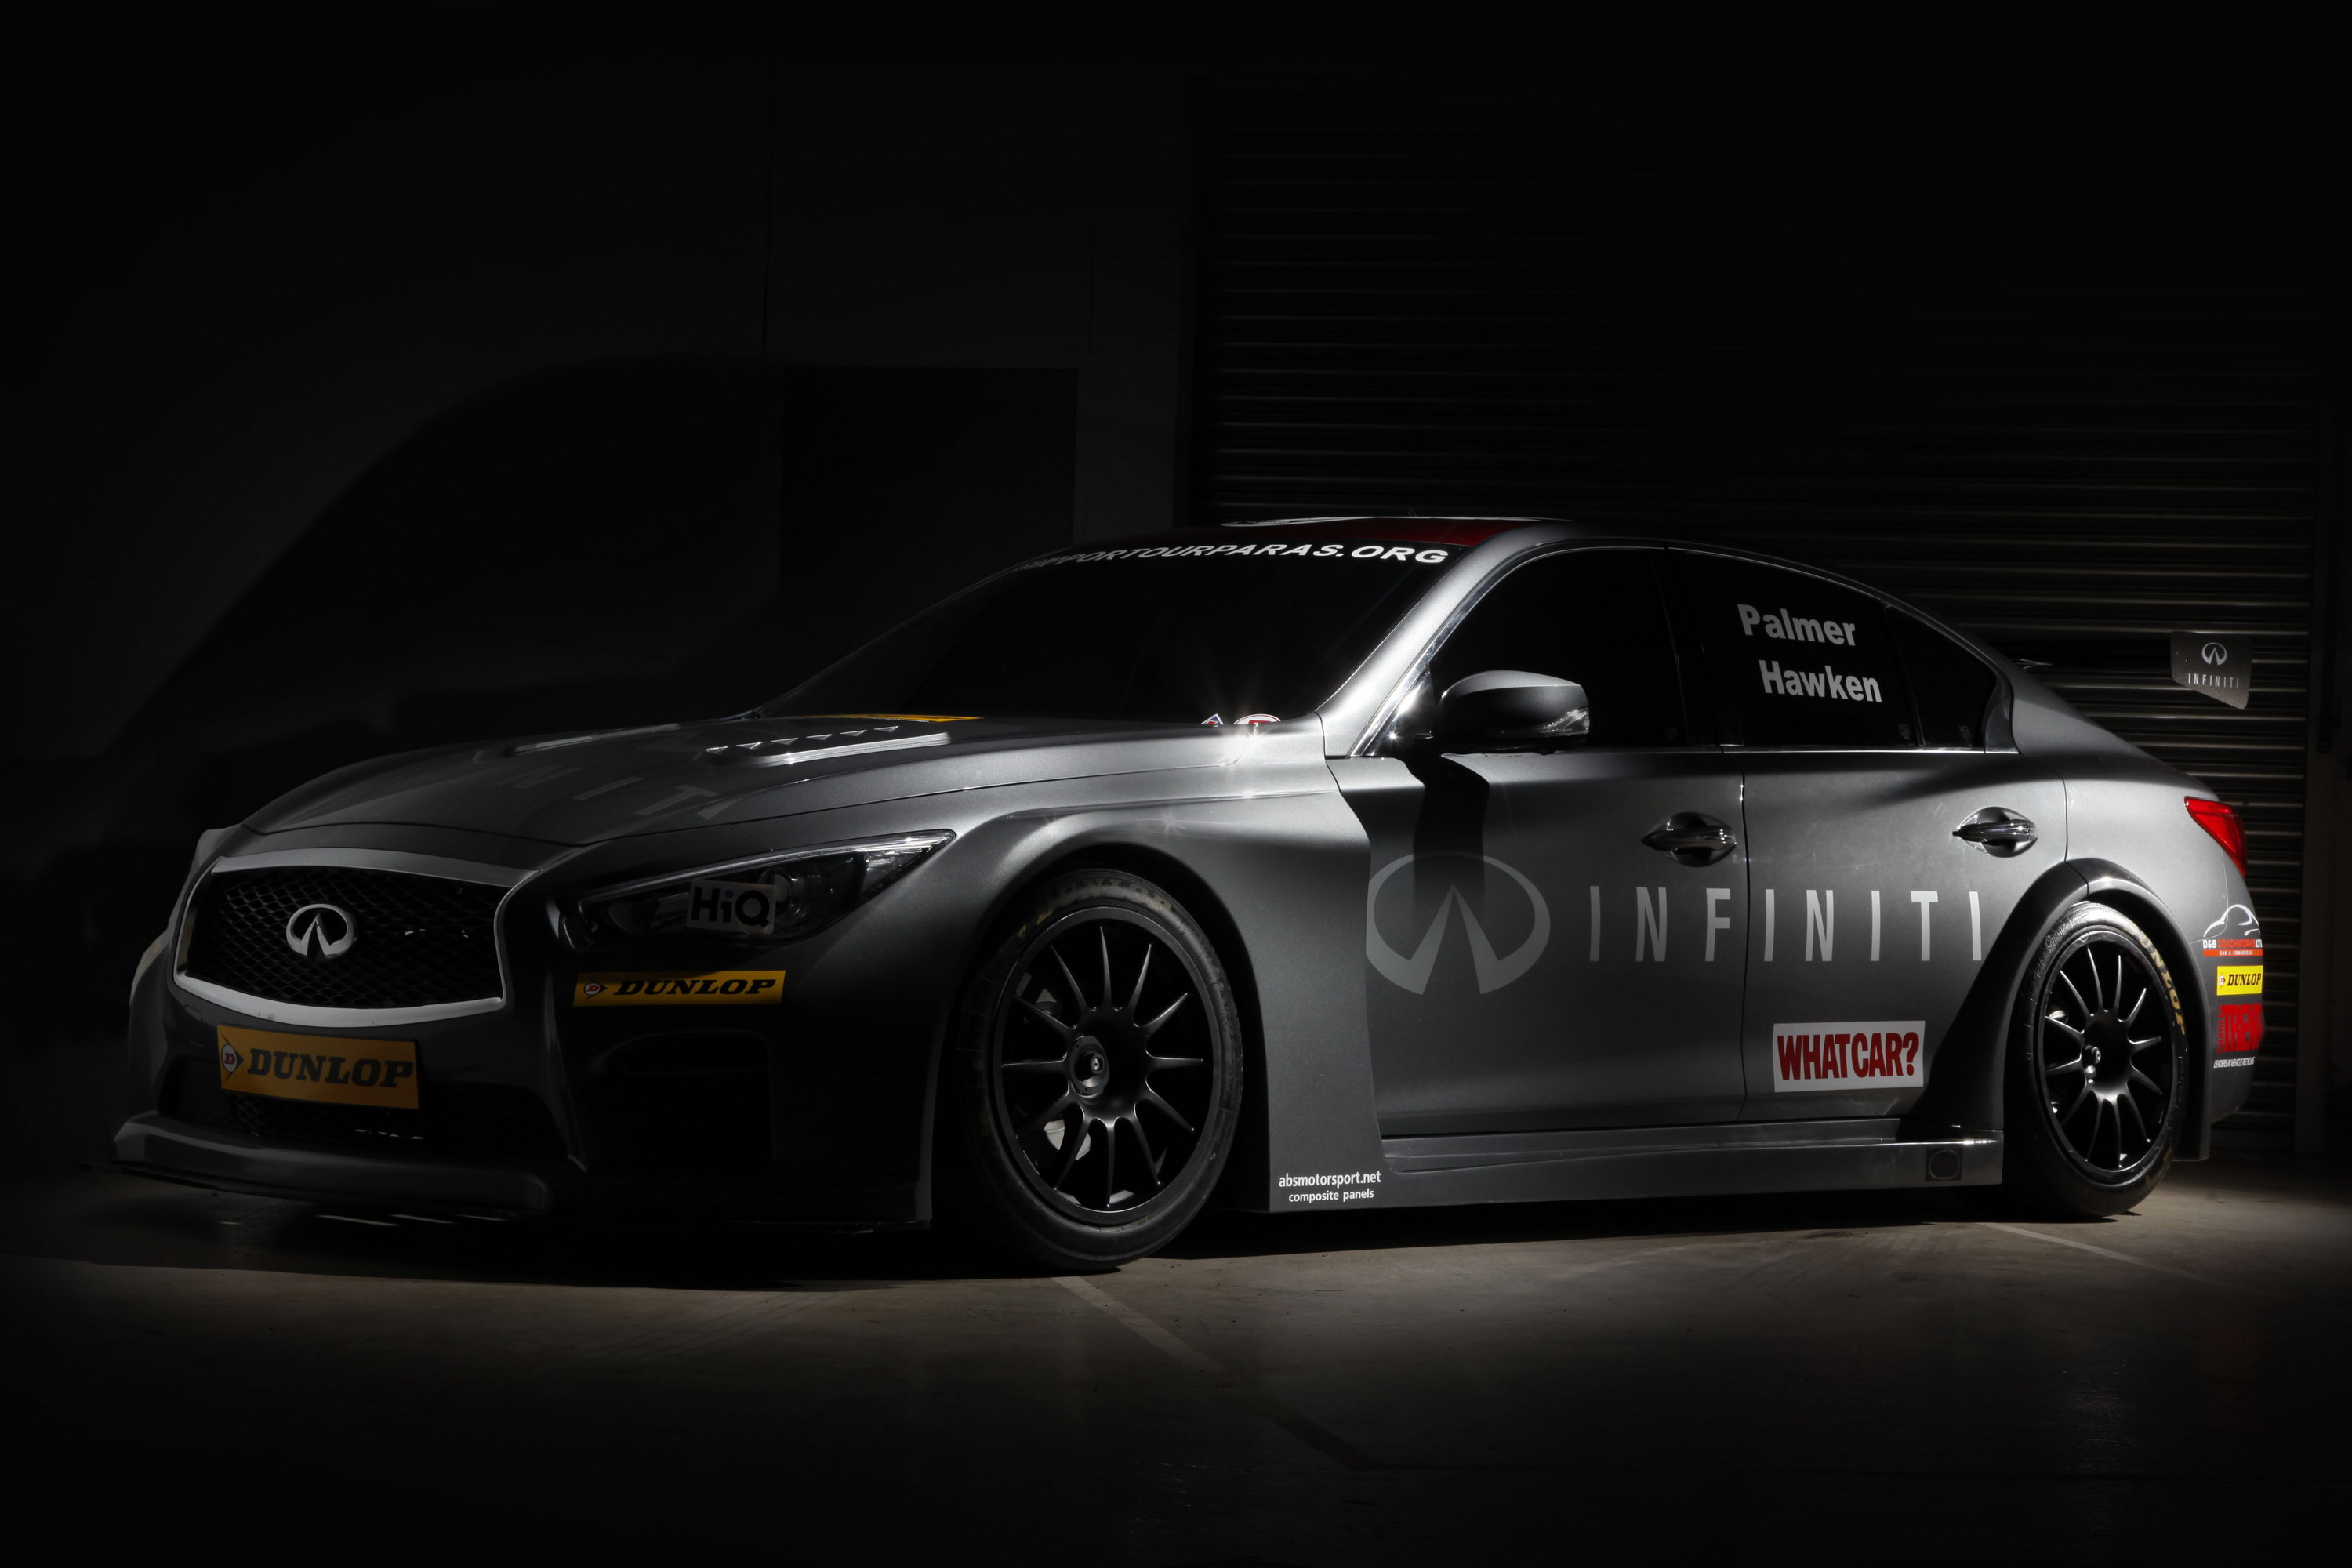 wallpapers infiniti wallpaper photos and infinity hd other images